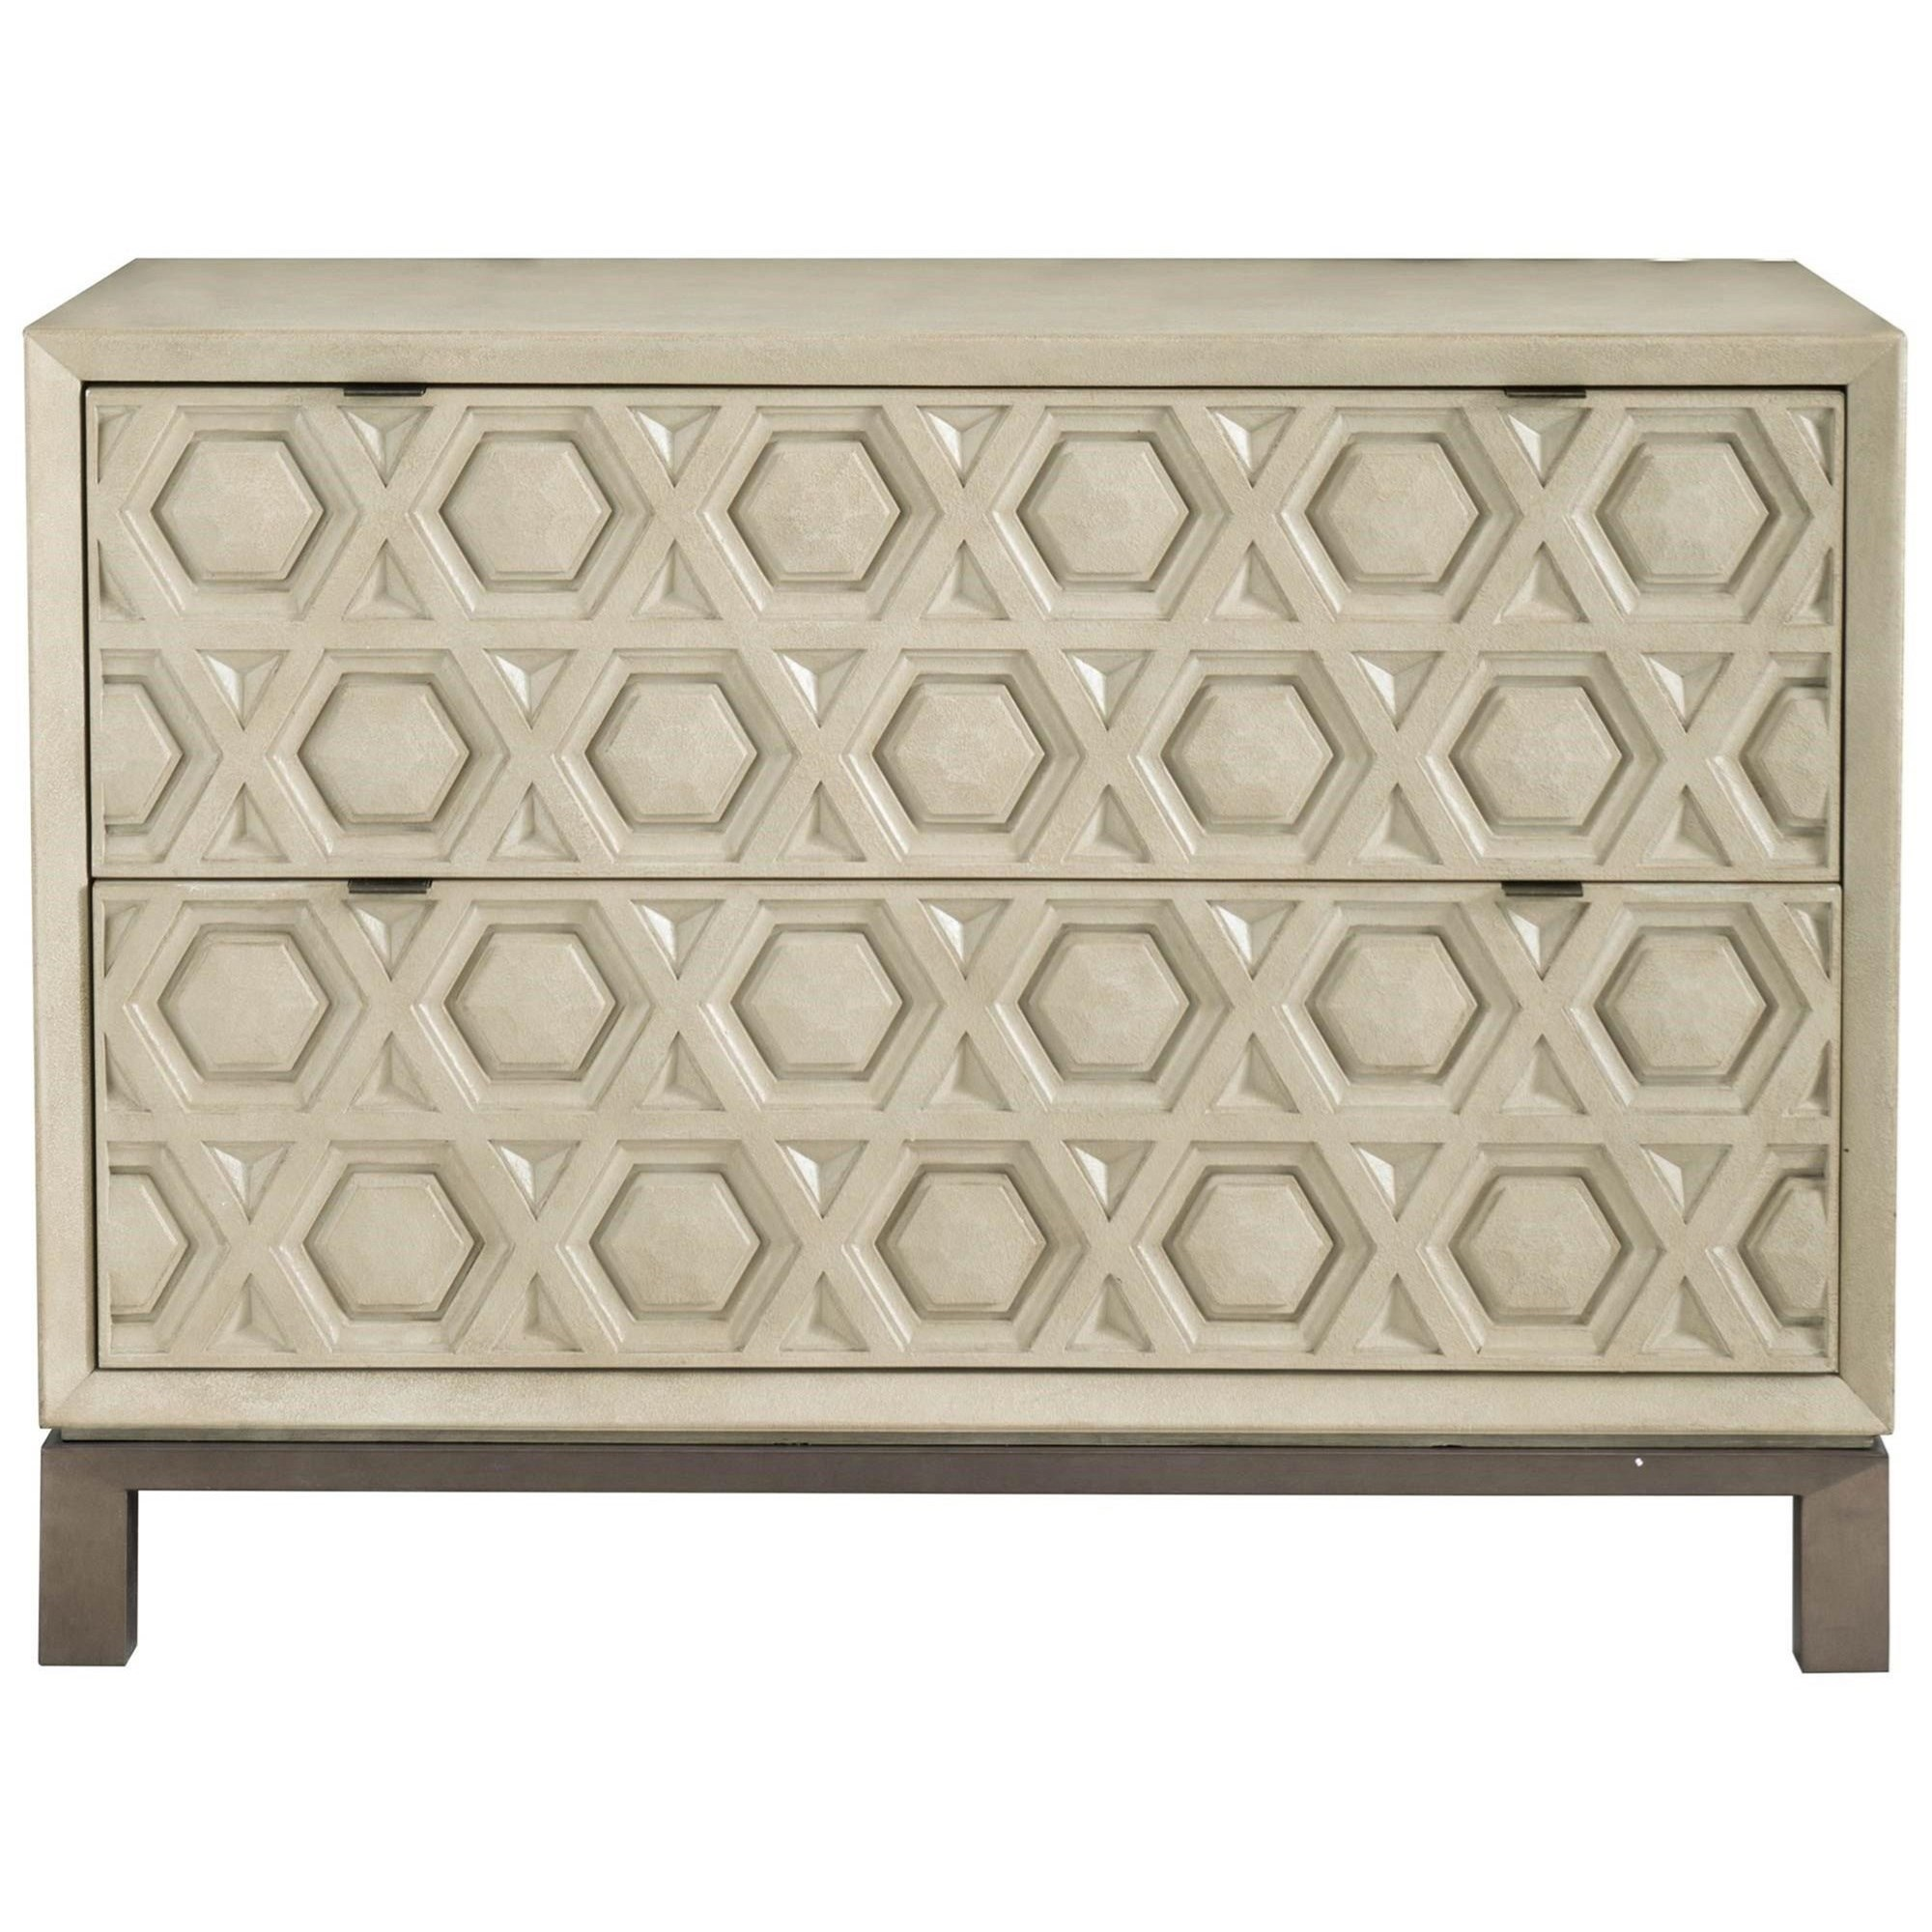 Transitional 2-Drawer Chest